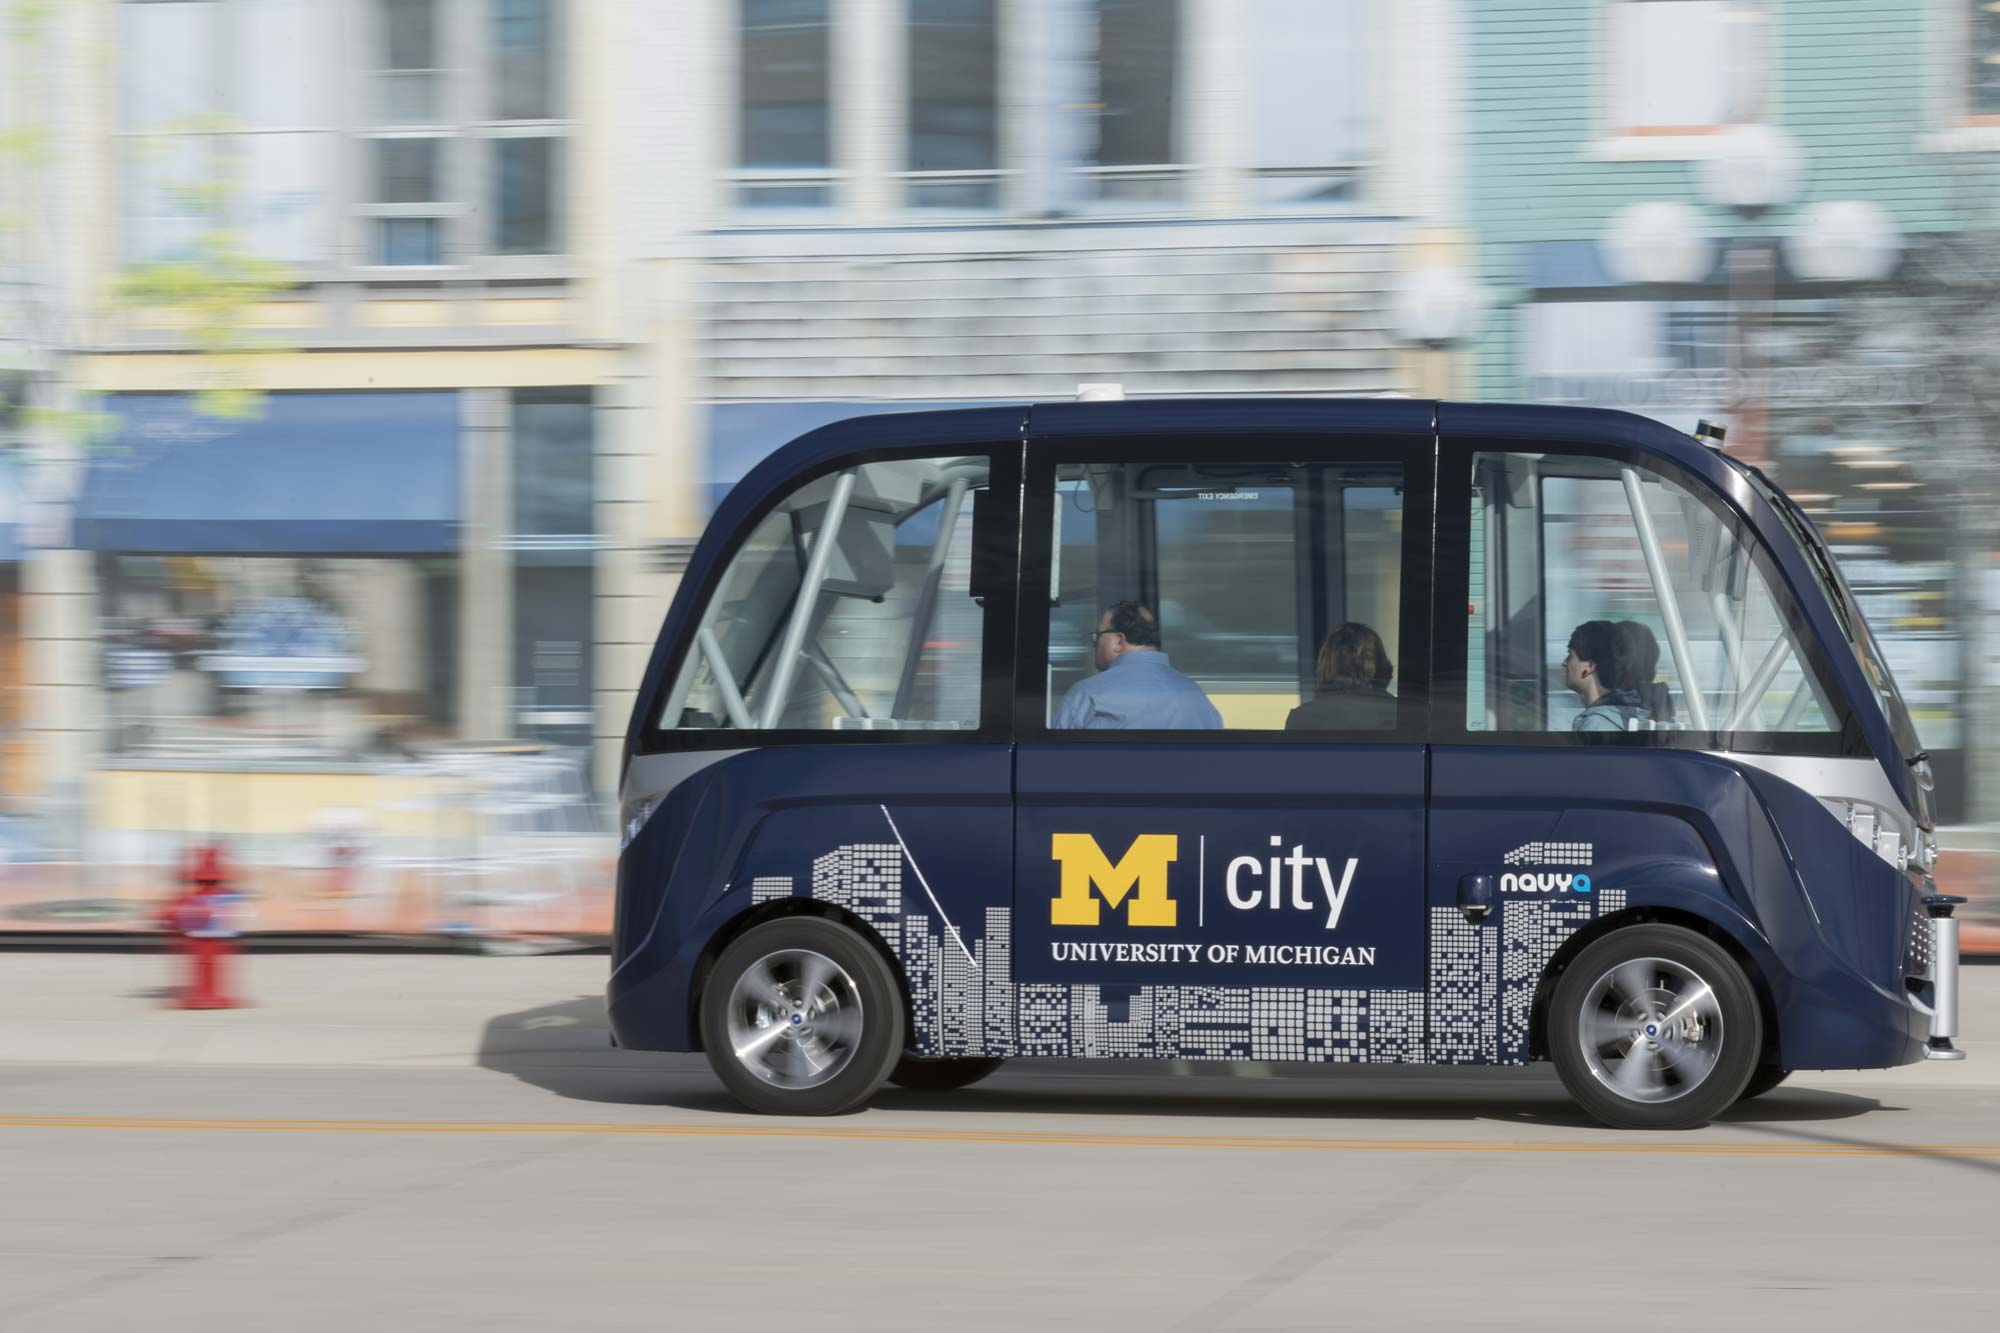 The driverless shuttle at Mcity. Image credit: Roger Hart, Michigan Photography